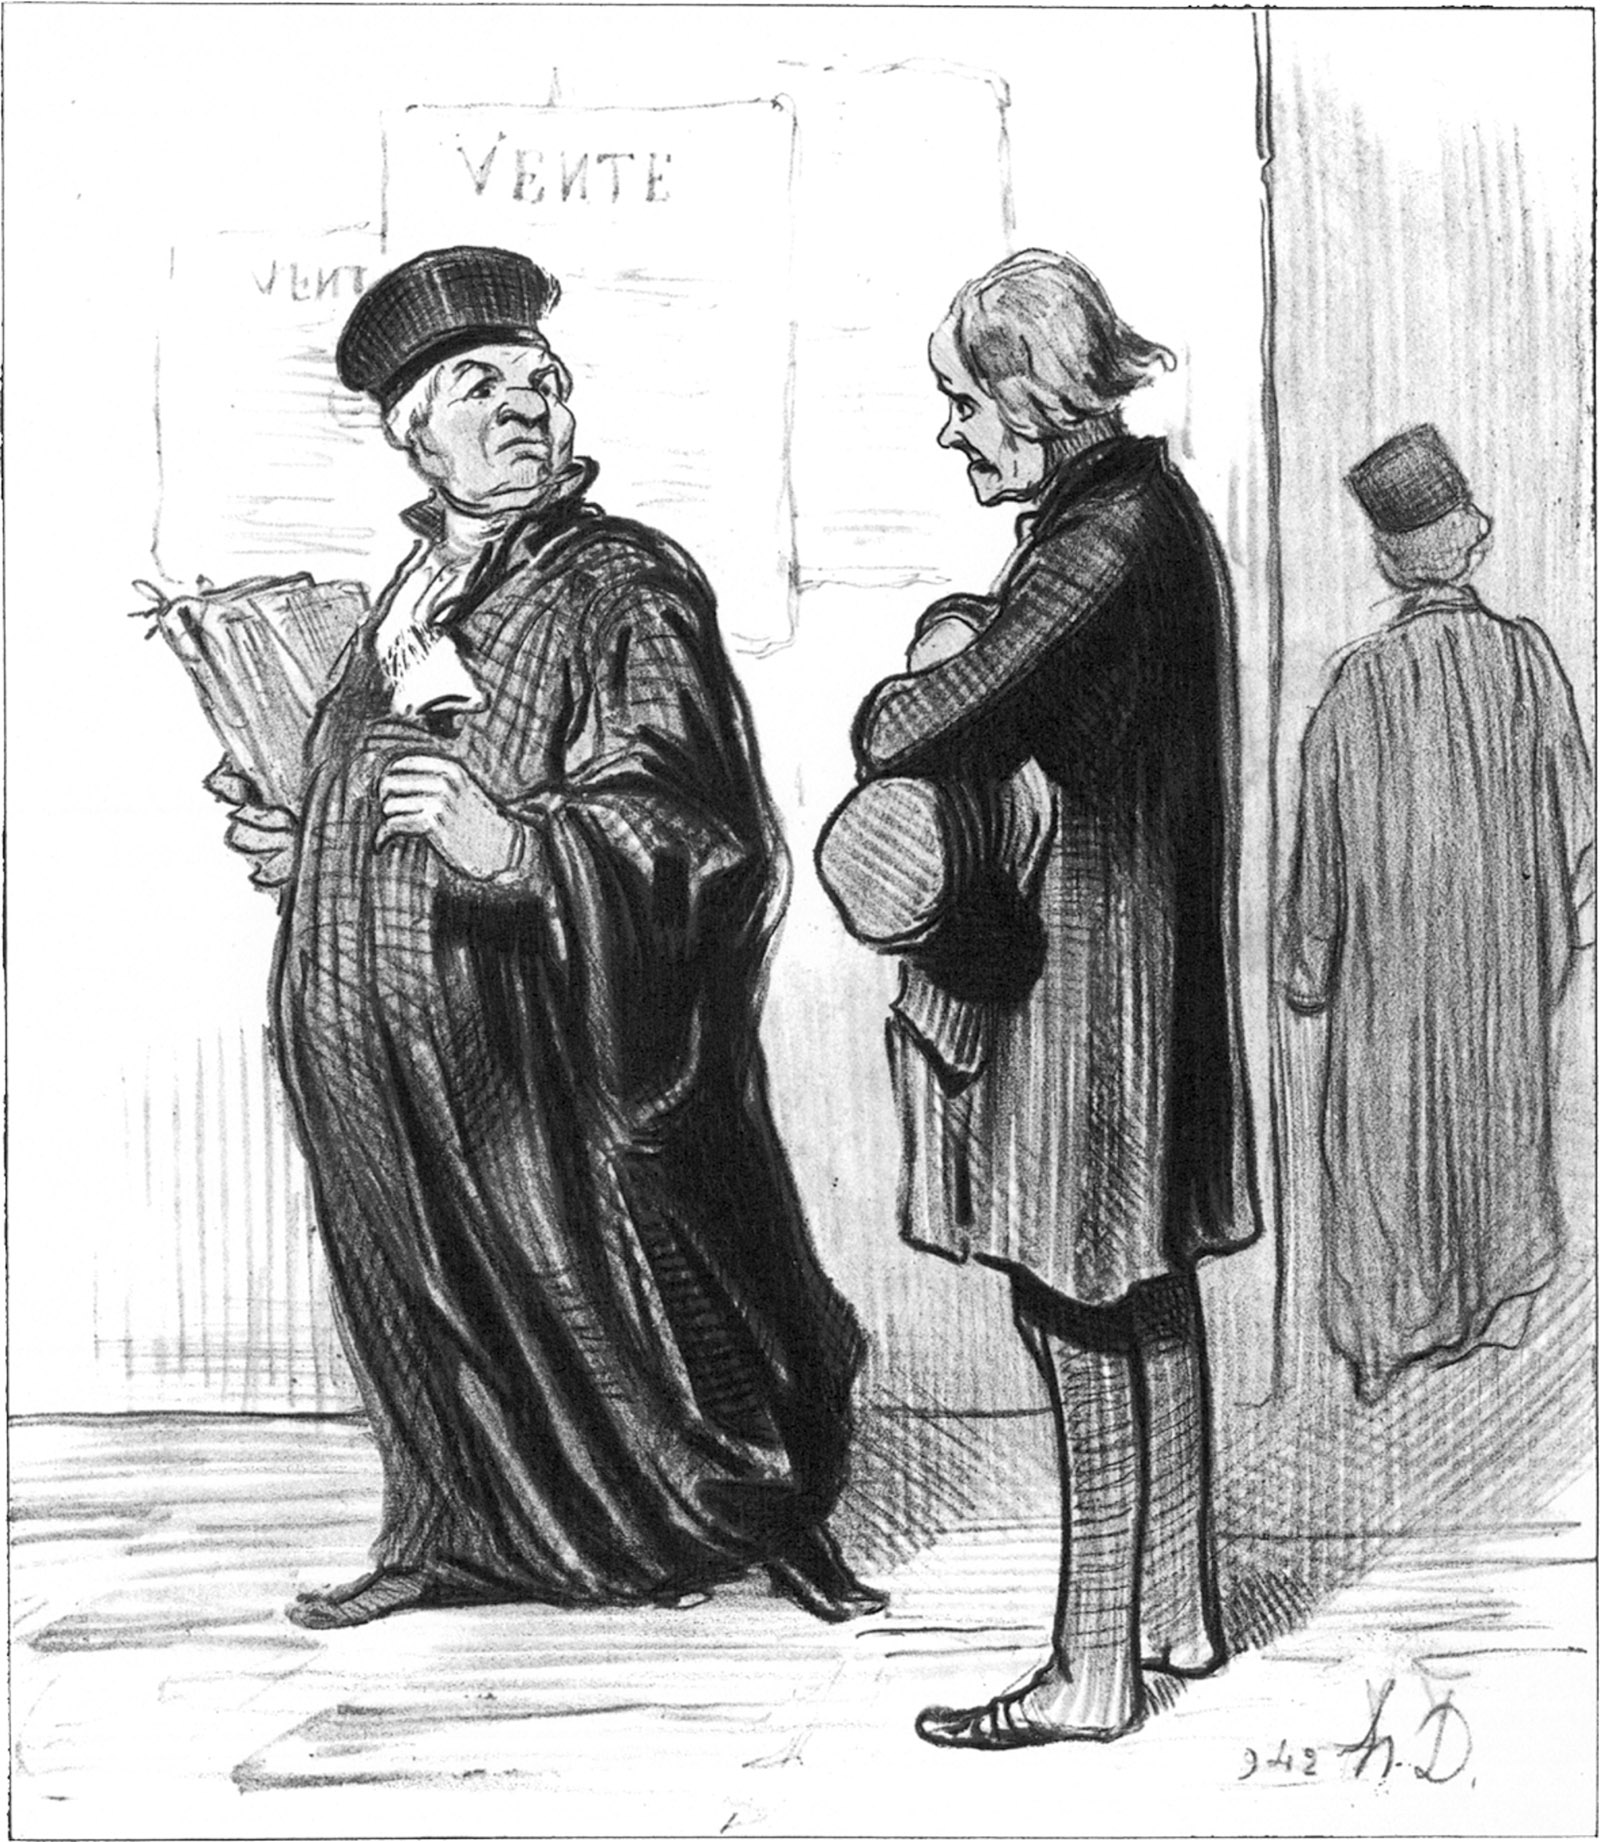 'My dear Sir, it is quite impossible for me to take on your case. You lack the most important piece of evidence...that you can pay my fee!'; lithograph by Honoré Daumier, 1846